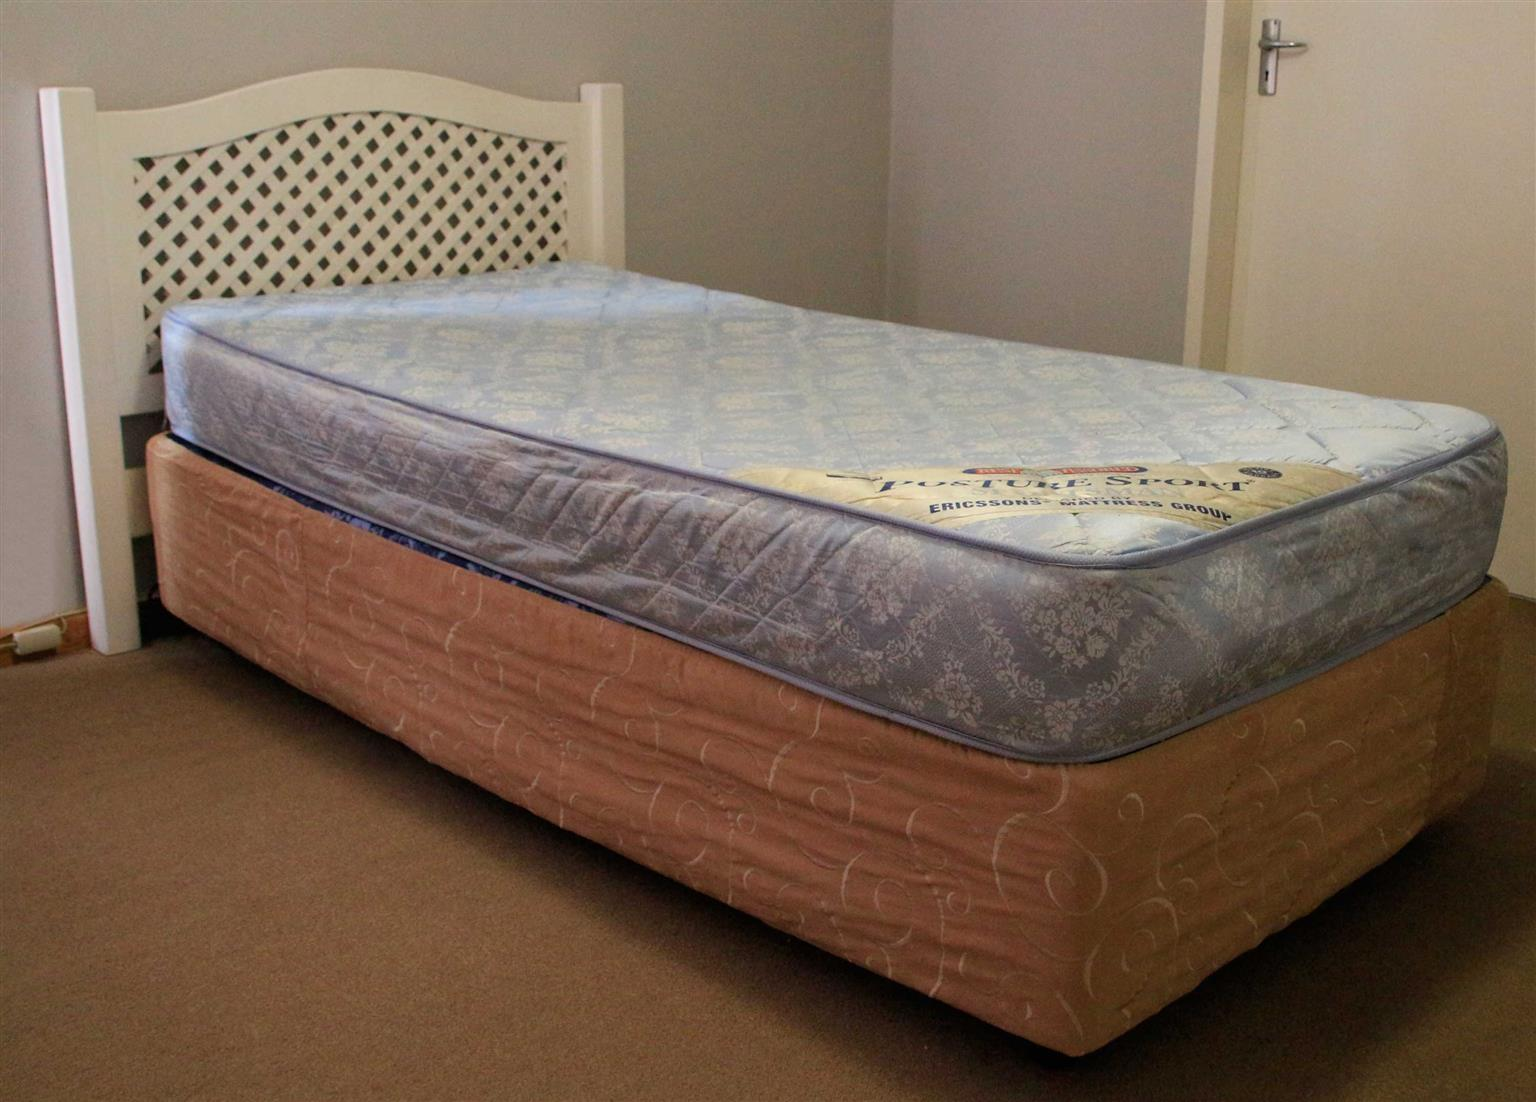 Bed double base single bed with headboard